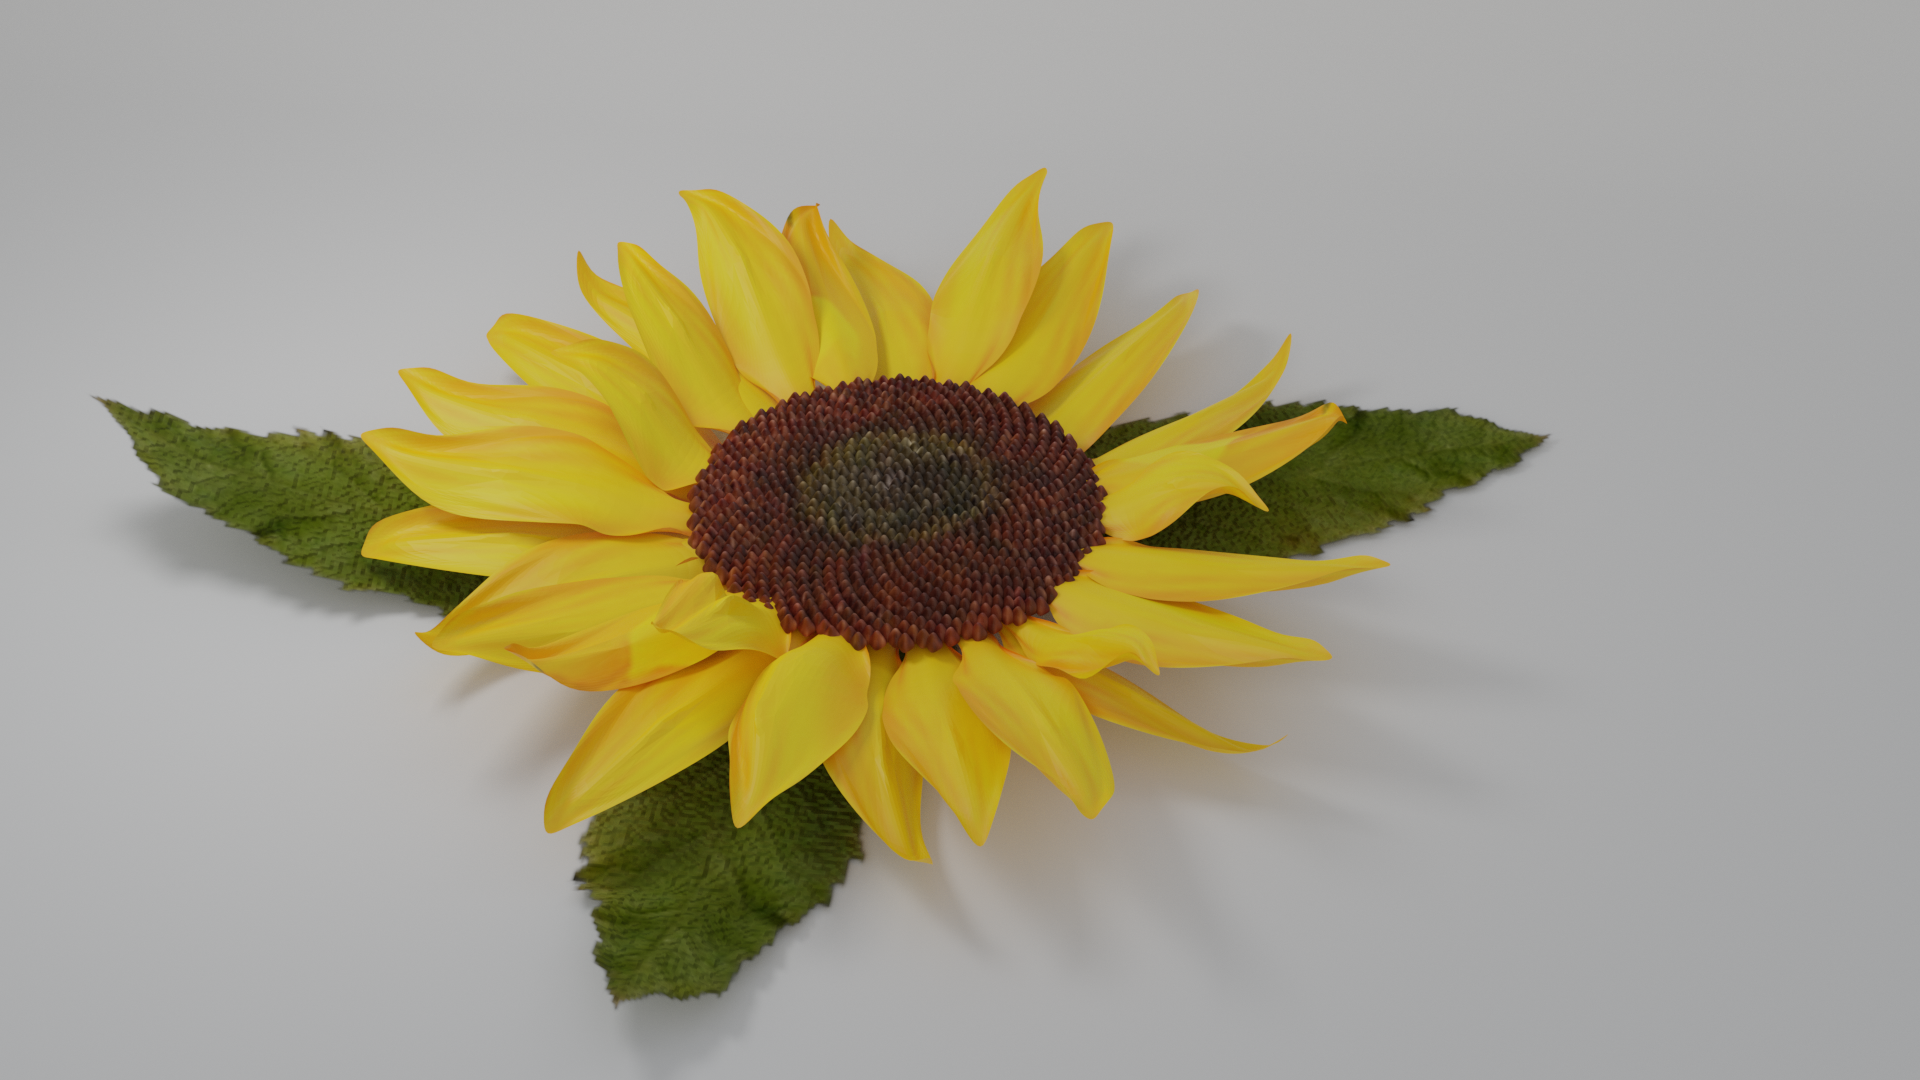 Sunflower preview image 2